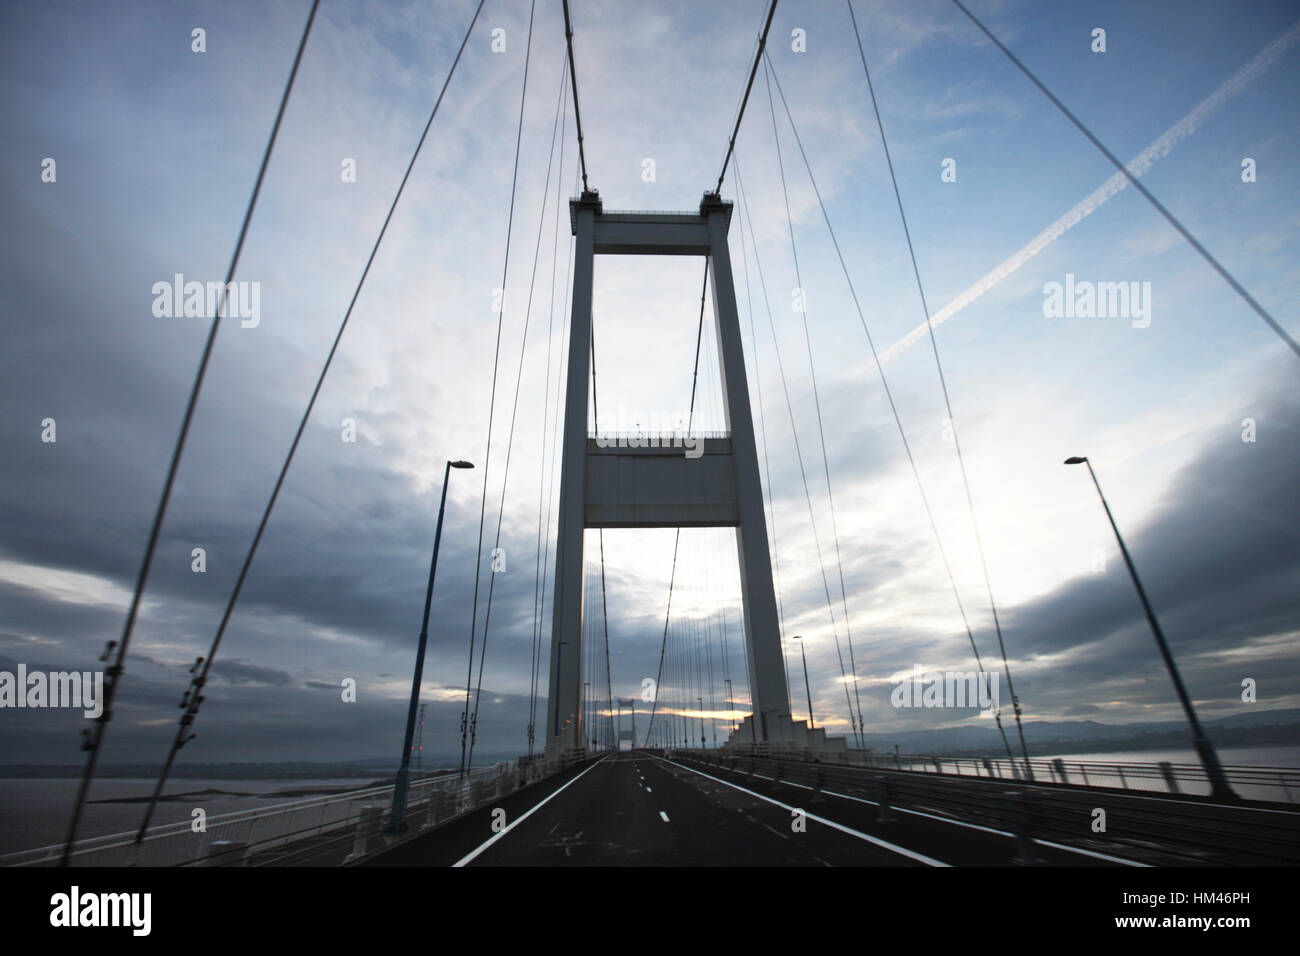 M48 Severn Bridge crossing the River Severn Wales and England border. - Stock Image